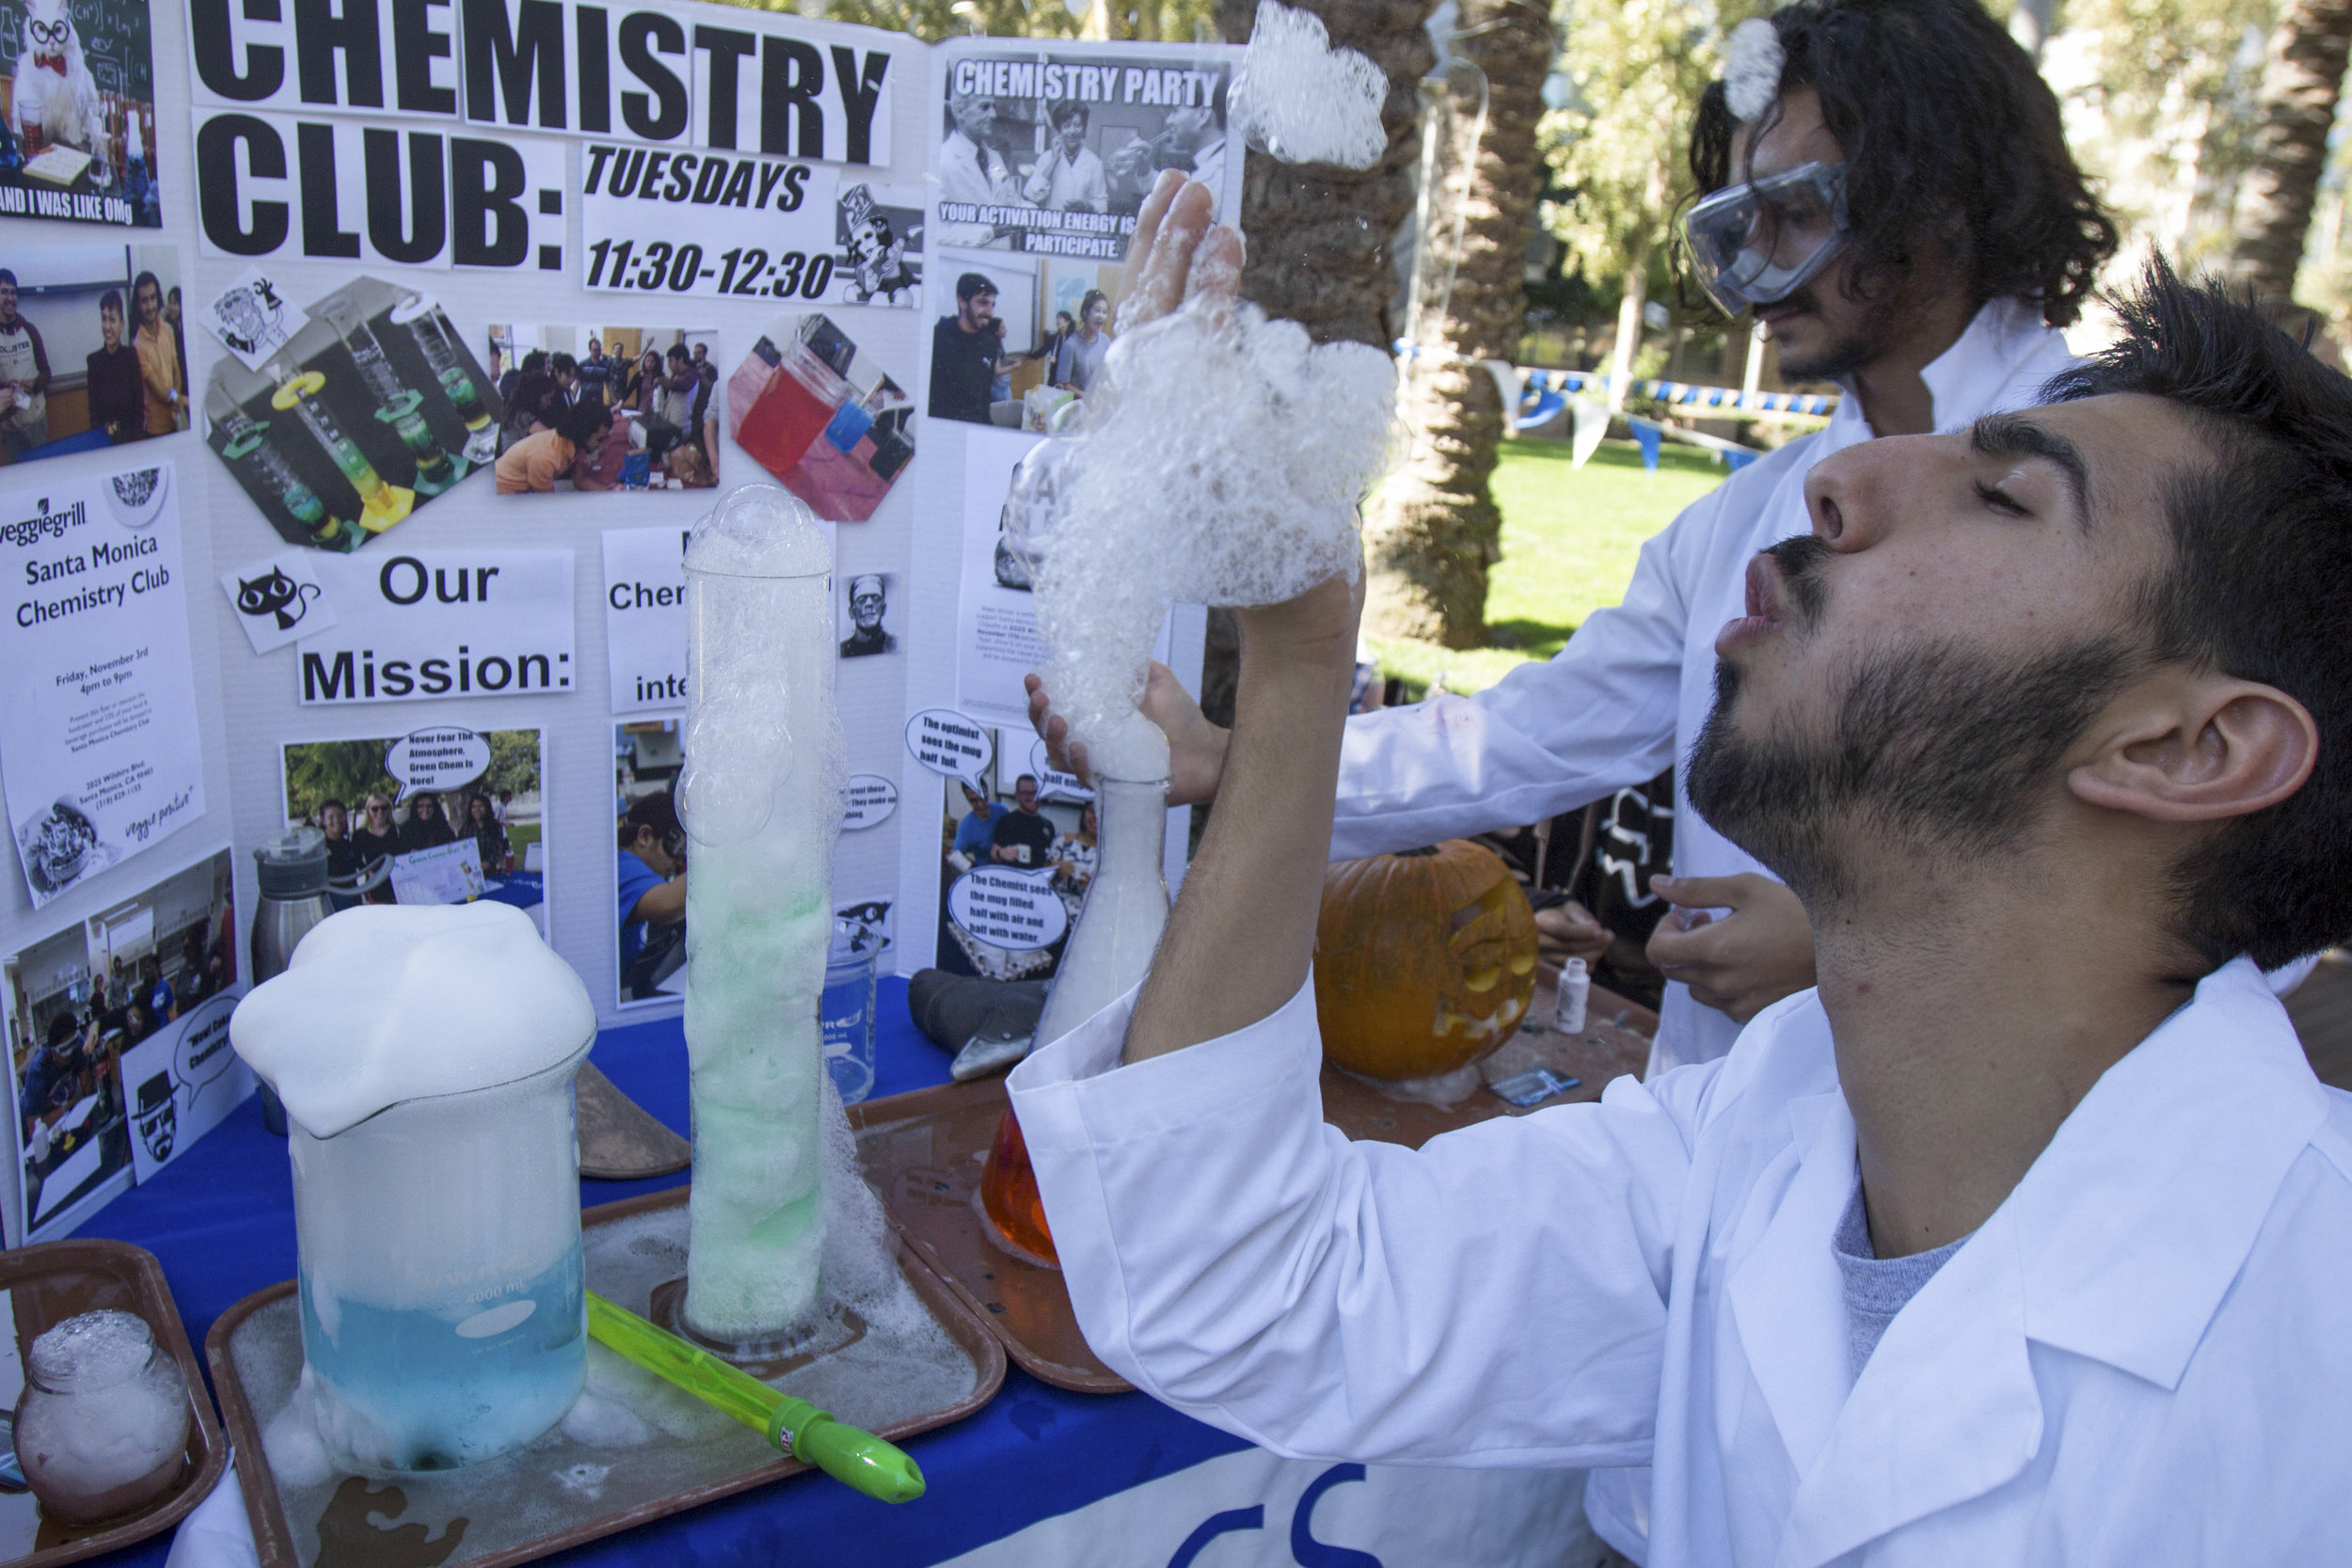 Elliot Makhani the treasurer of the Chemistry Club blowing bubbles the club made during Club Row on Thursday, October 26th, 2017 at Santa Monica College in Santa Monica, Calif. The mission of the Chemistry club is to bring together chemistry students and fansof all ages. (Photo by: Brian Quiroz)